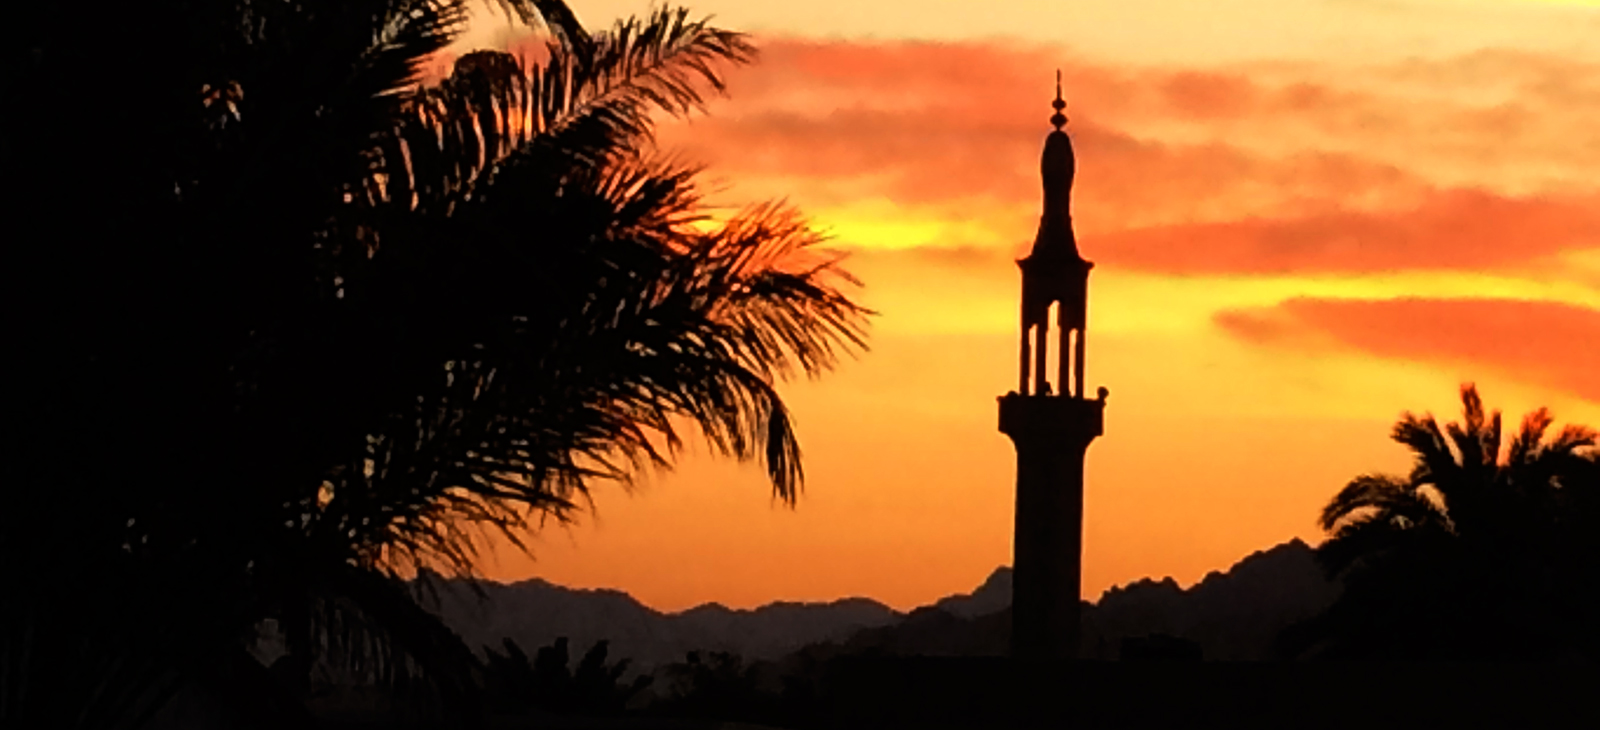 sunset-mosque.jpg